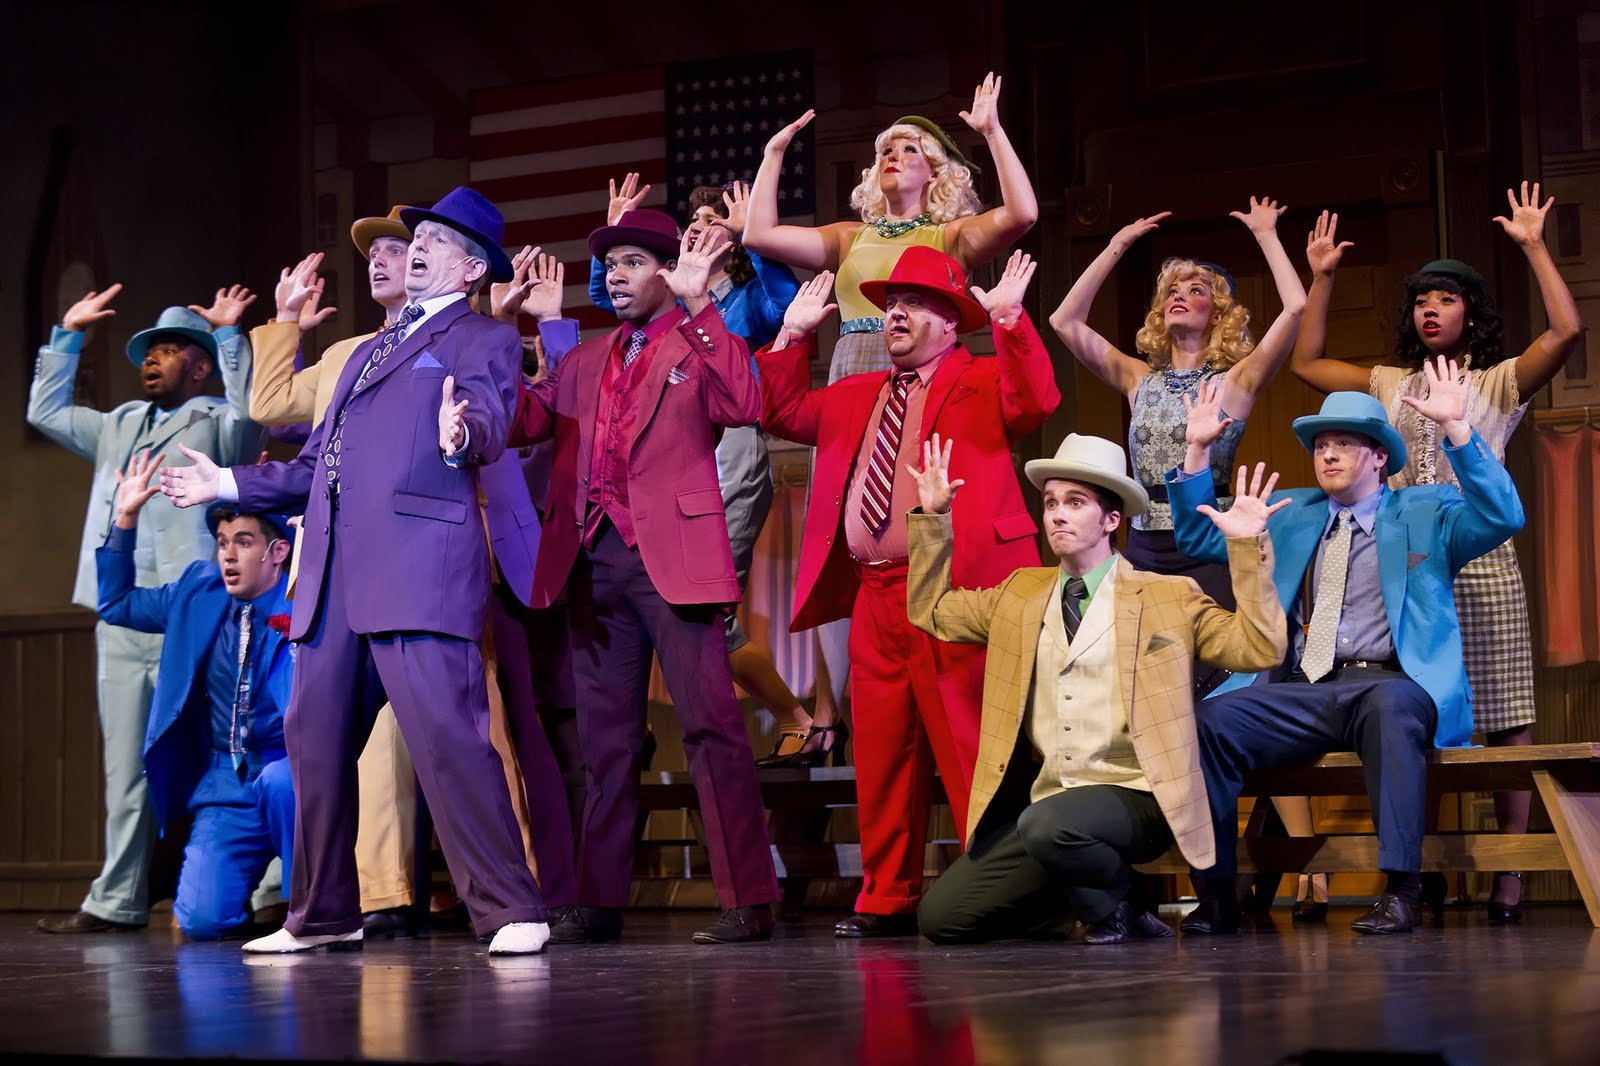 an analysis of guys and dolls performed in the murray kahn theater It's a tale as old as time about a beast, a beauty, and a happily ever after ending its disney's beauty and the beast, which was performed with skill this past saturday by south county secondary school.